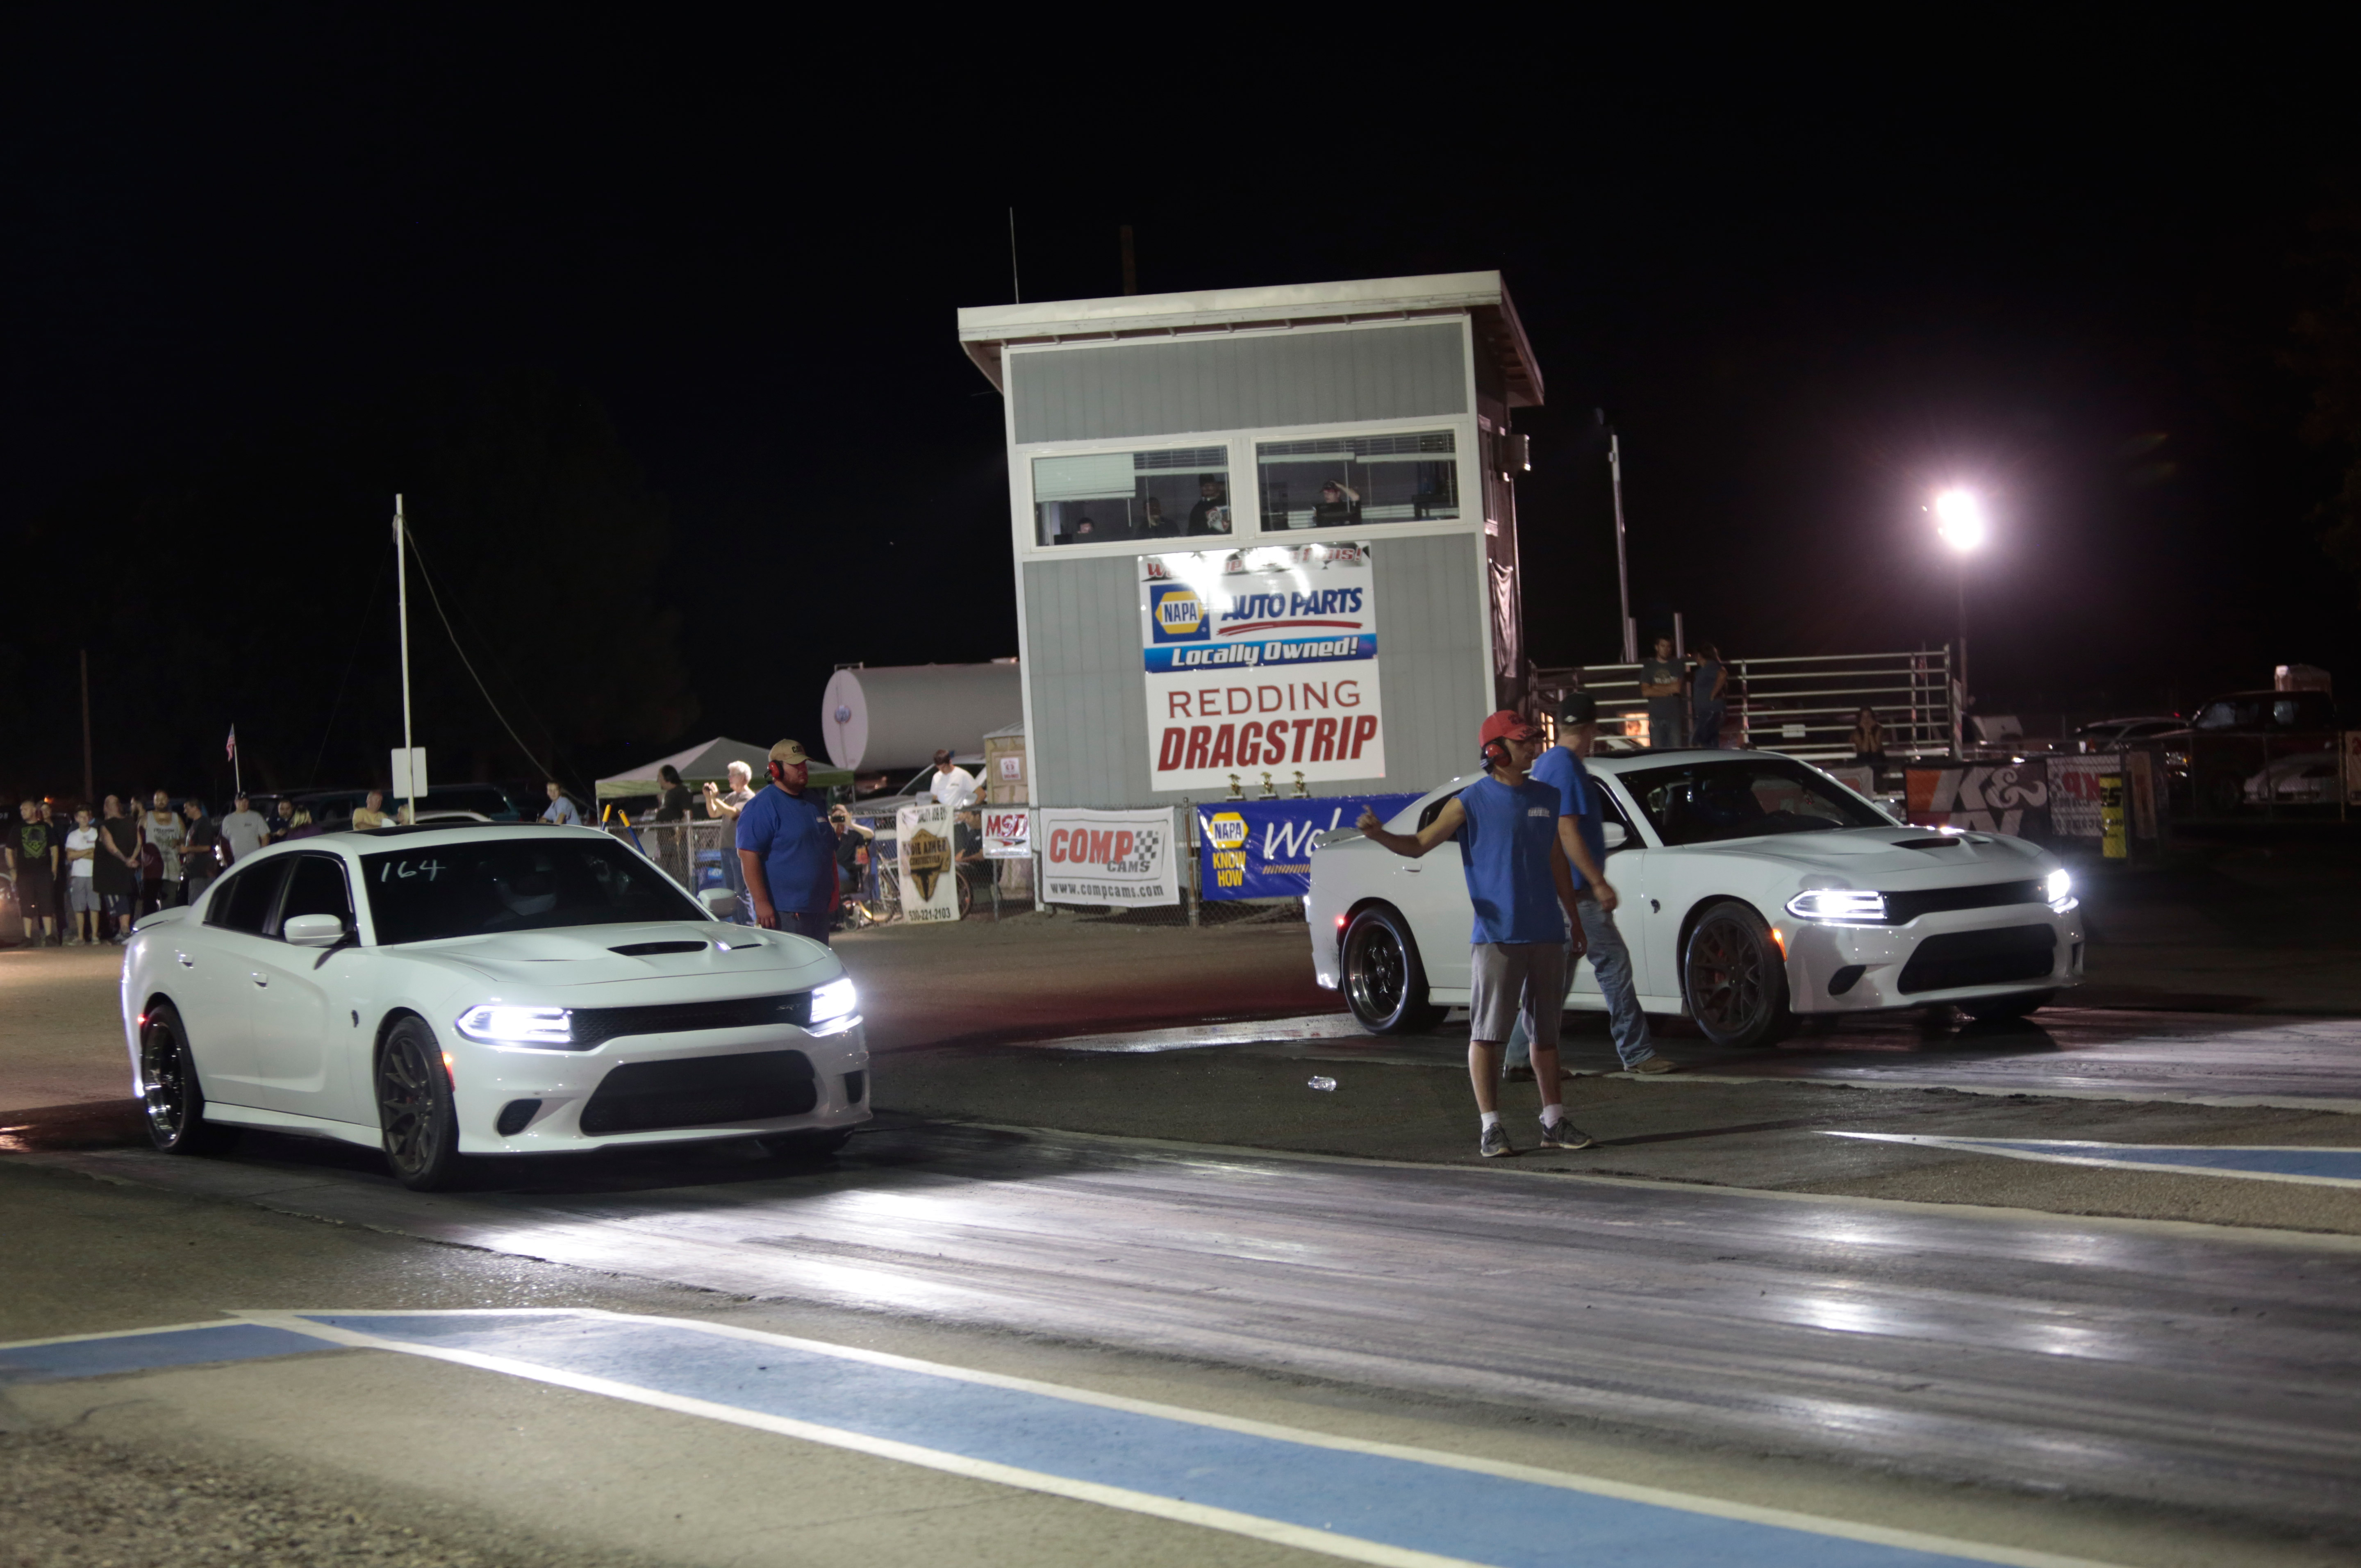 At Redding we were reunited with our Hellcat pal from Sacramento, Duane Roots. He'd gone right out after our Wednesday race and bought wheels and drag radials. The track lined us up for a three-round match race and the crowd went wild!